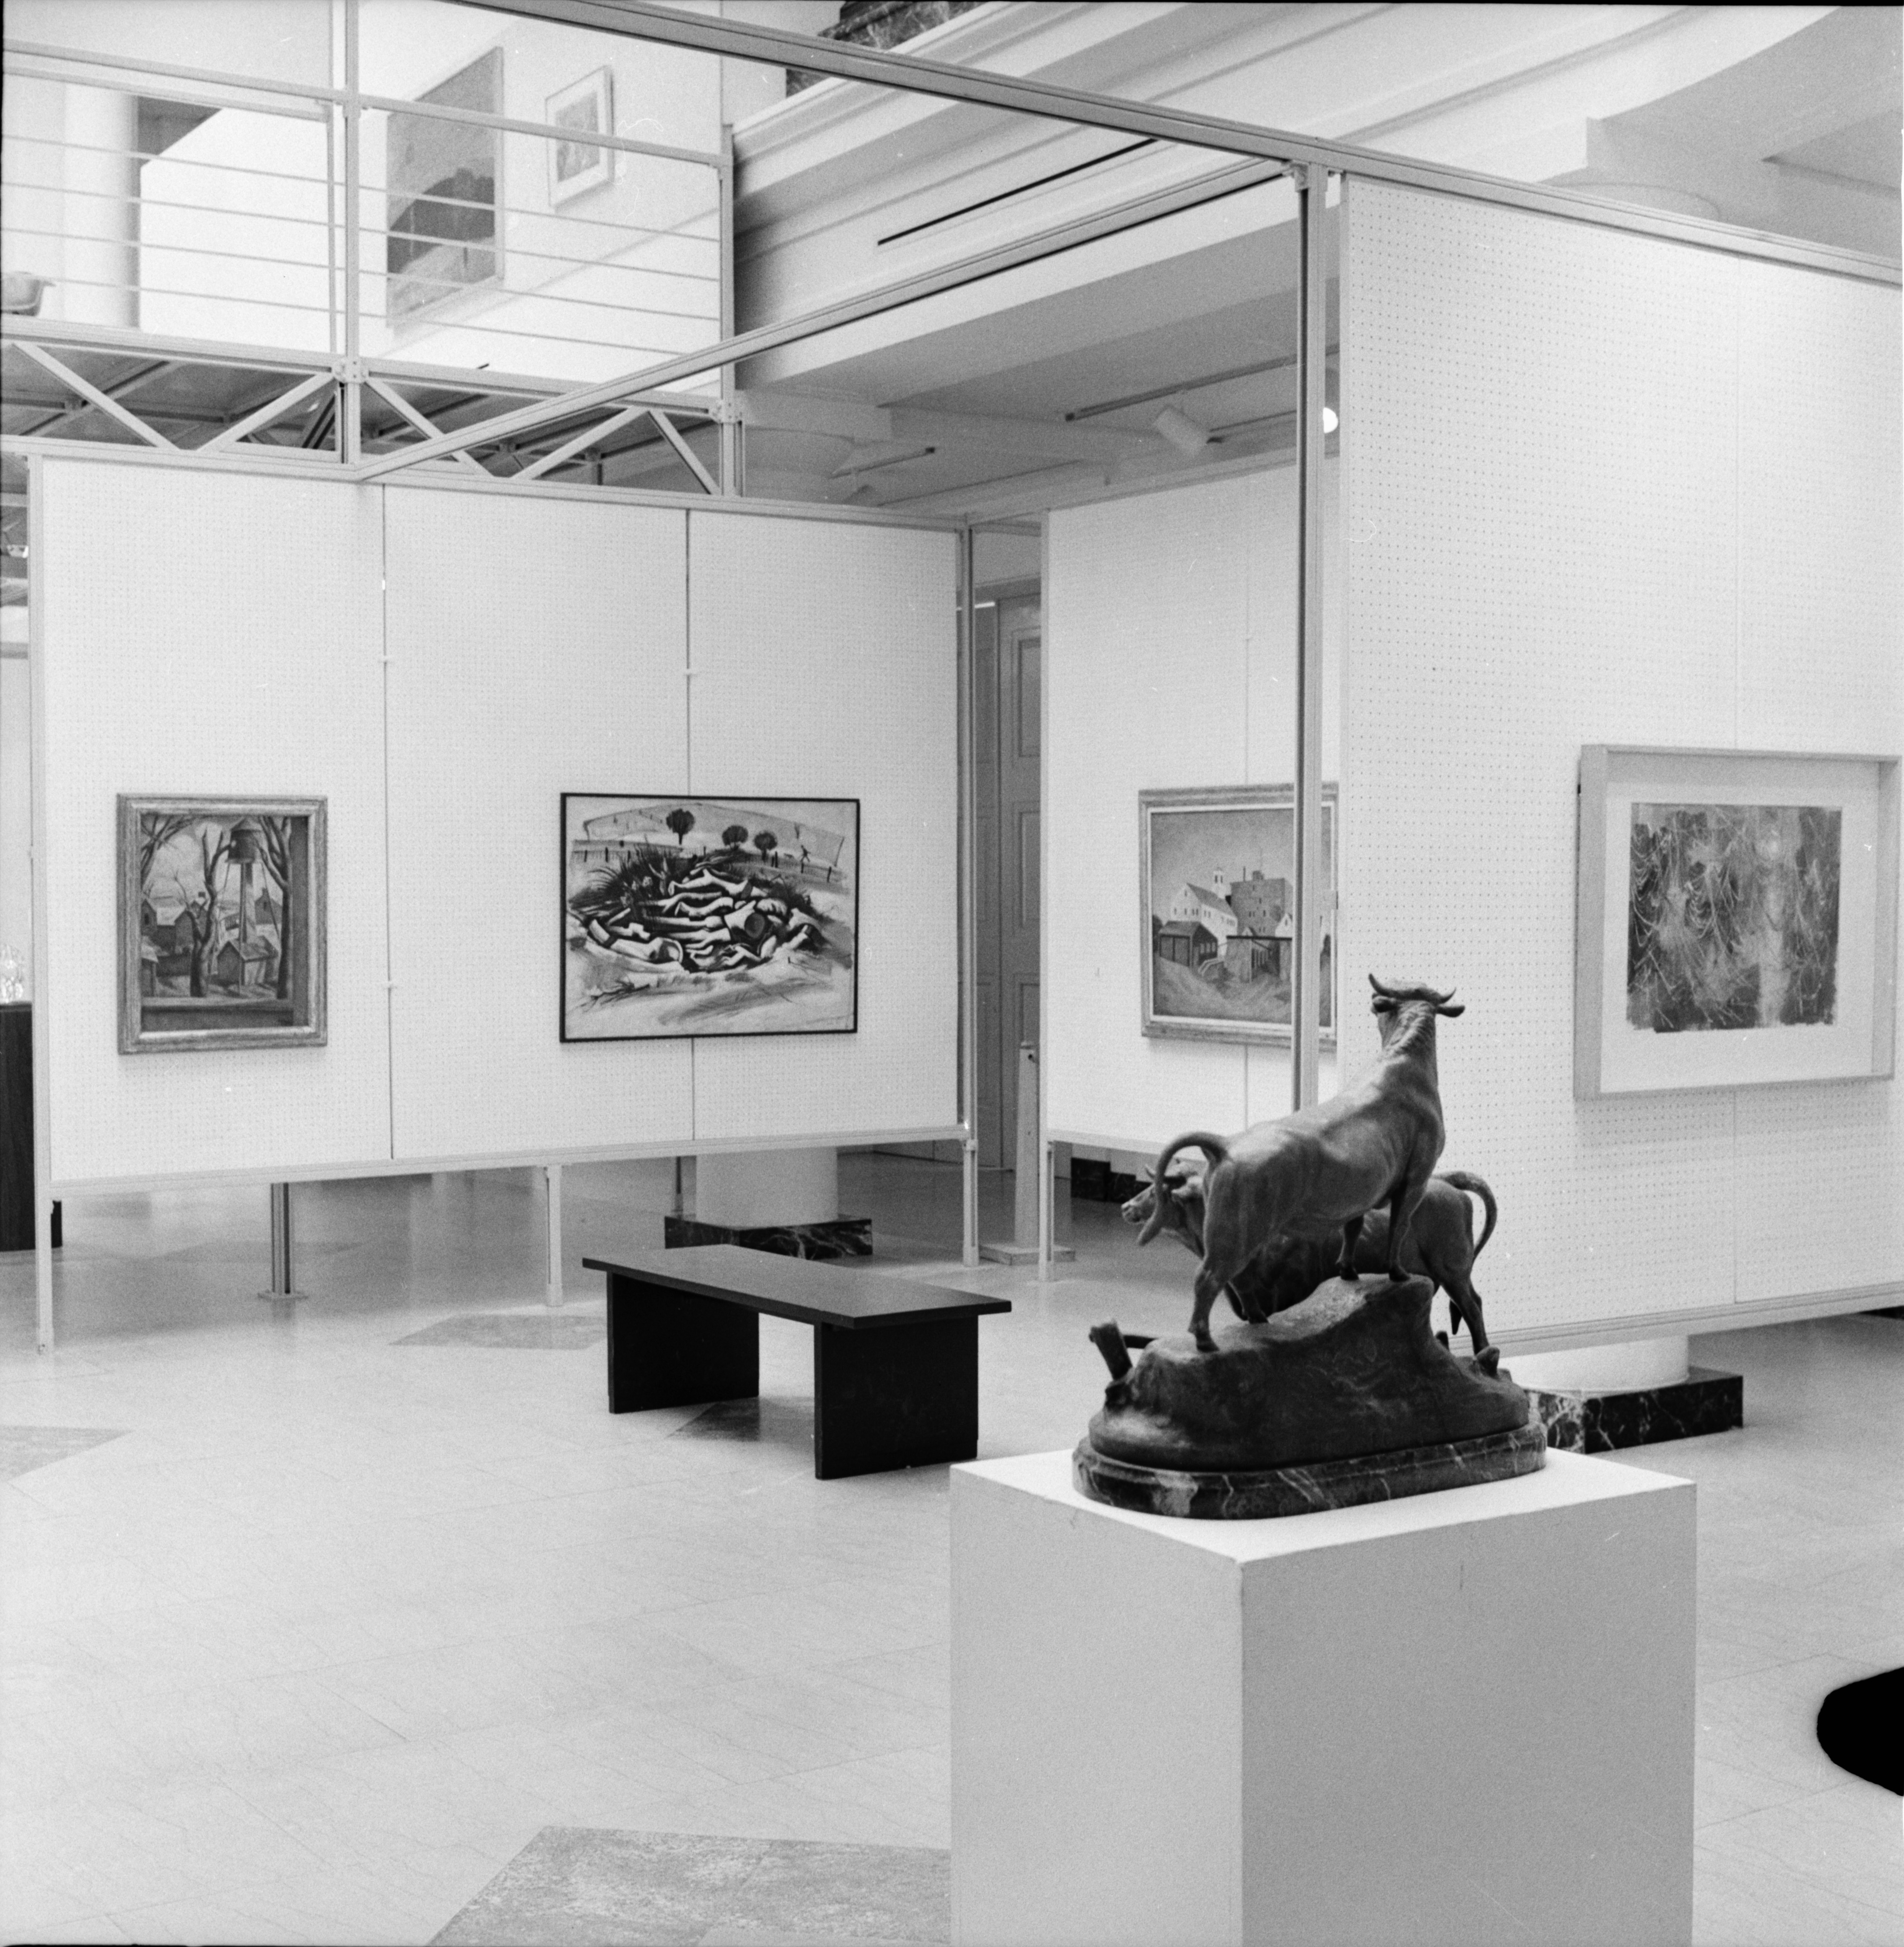 Exhibit of Brook's 'Nude On A Navajo Blanket' and McFall's 'Buildings With Water Tank' at the University of Michigan Art Museum, September 1972 image